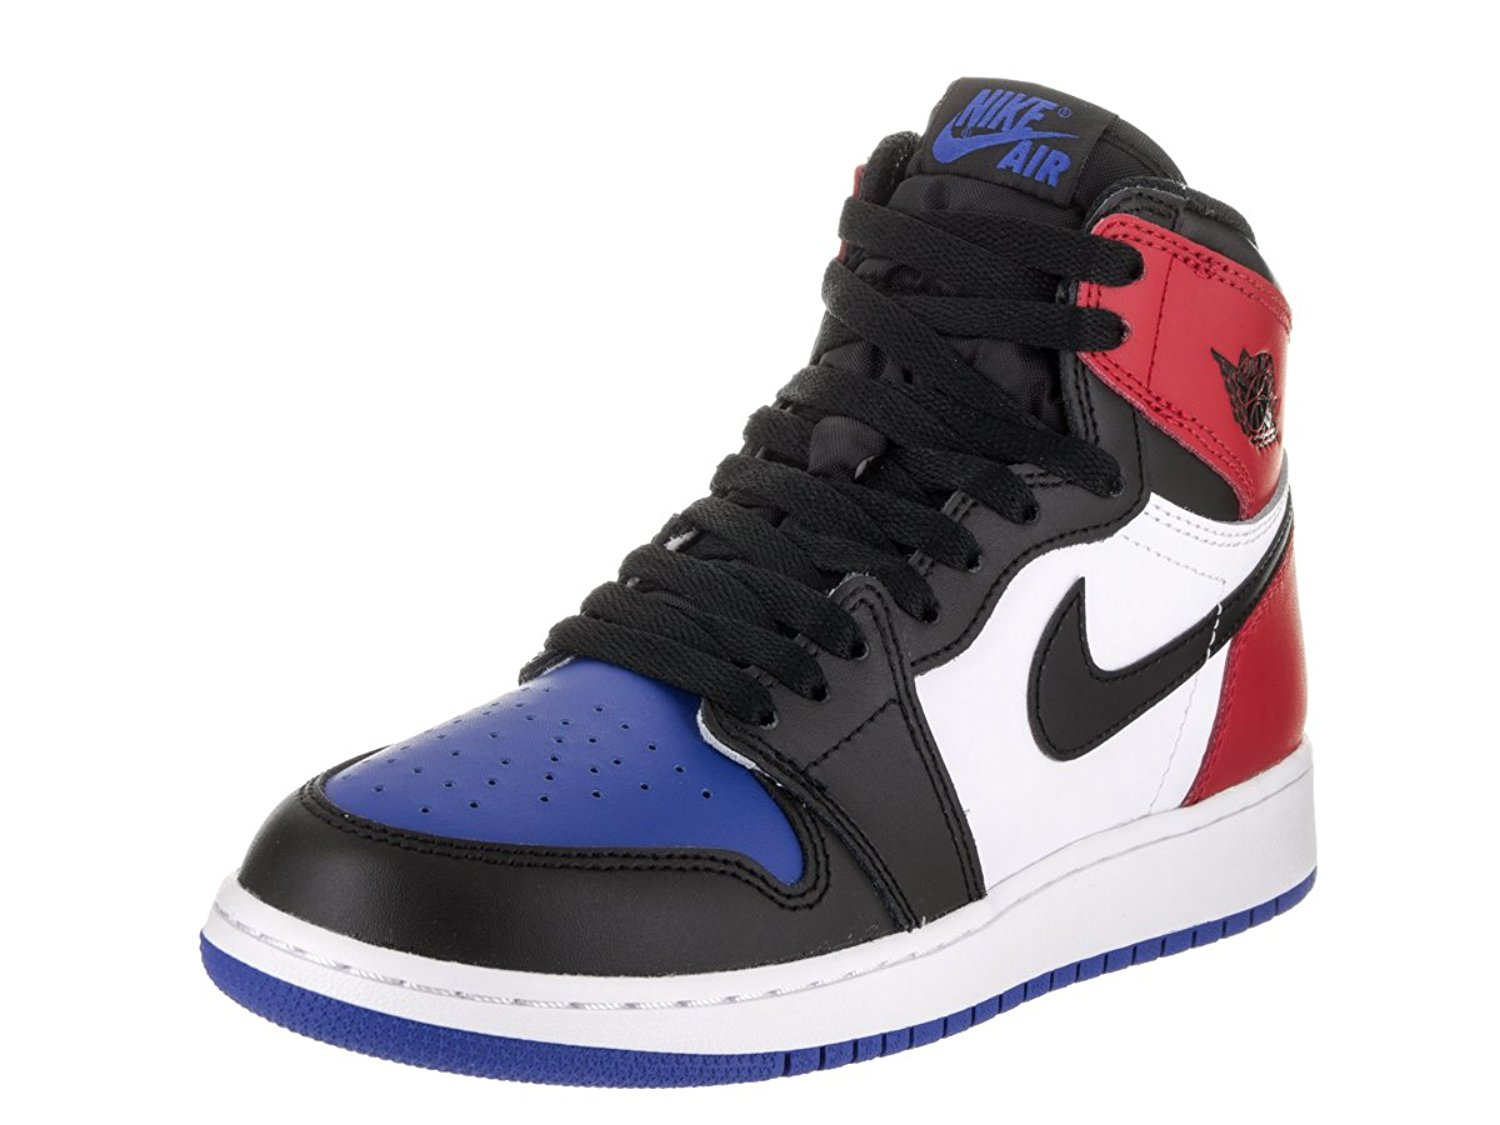 separation shoes 6d8d1 a5d07 Get Quotations · Nike Air Jordan 1 Retro High Top 3 Pick OG BG LTD Sneaker  Current Collection black